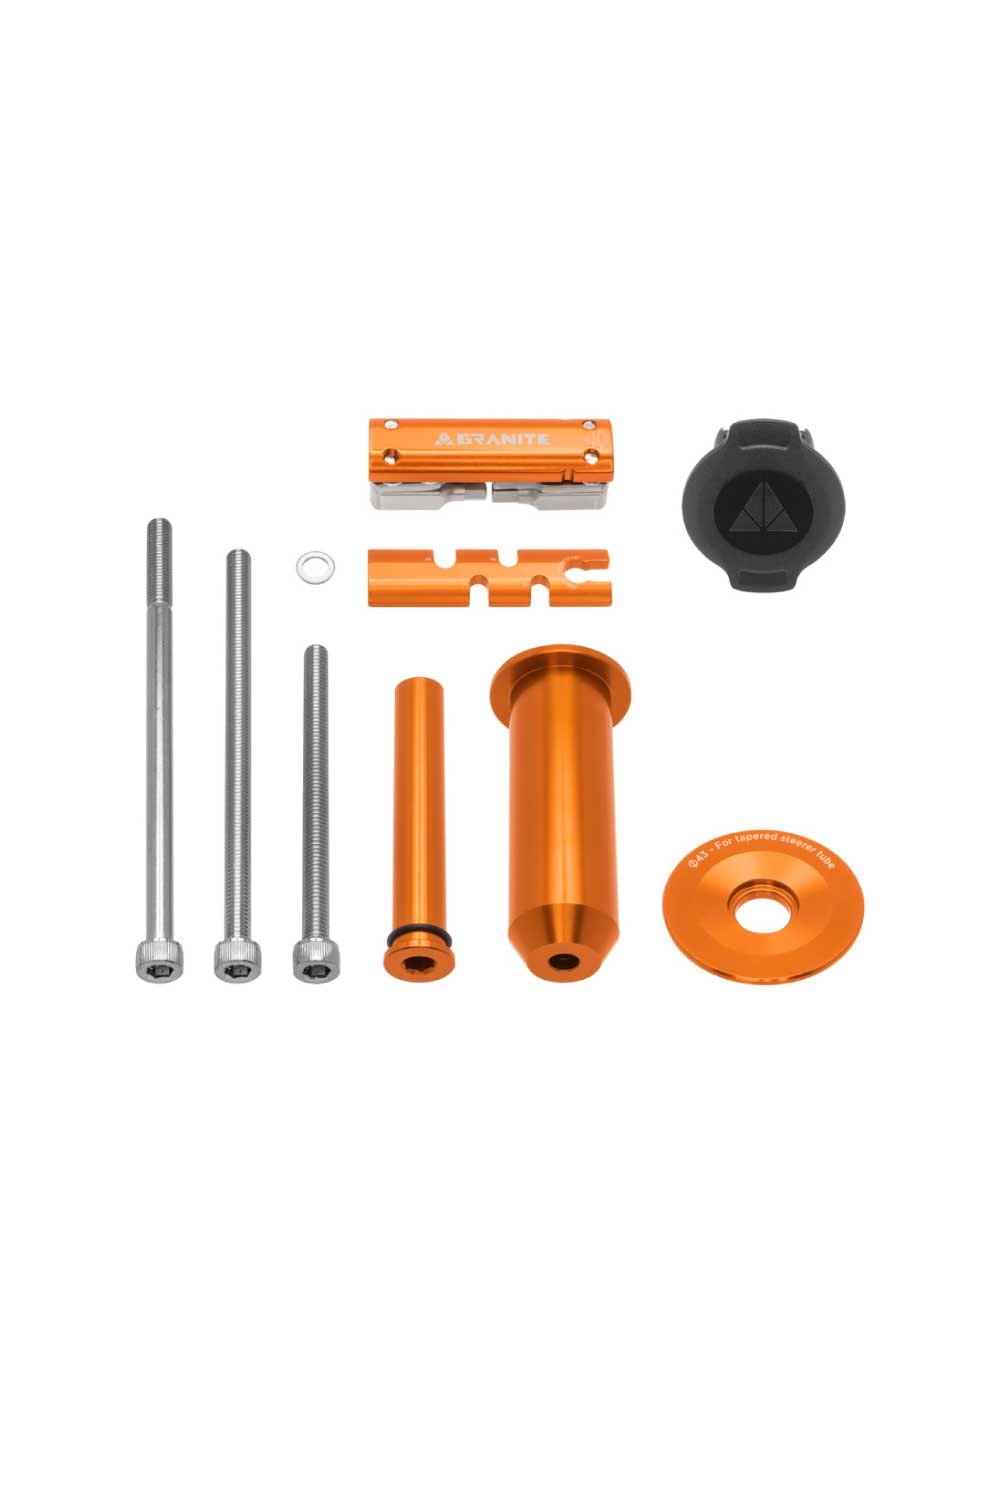 Granite Design Stash Multi Tool Kit Inside Steerer (Tapered 1 1/8-1 1/2) w/ 42mm Cap Orange